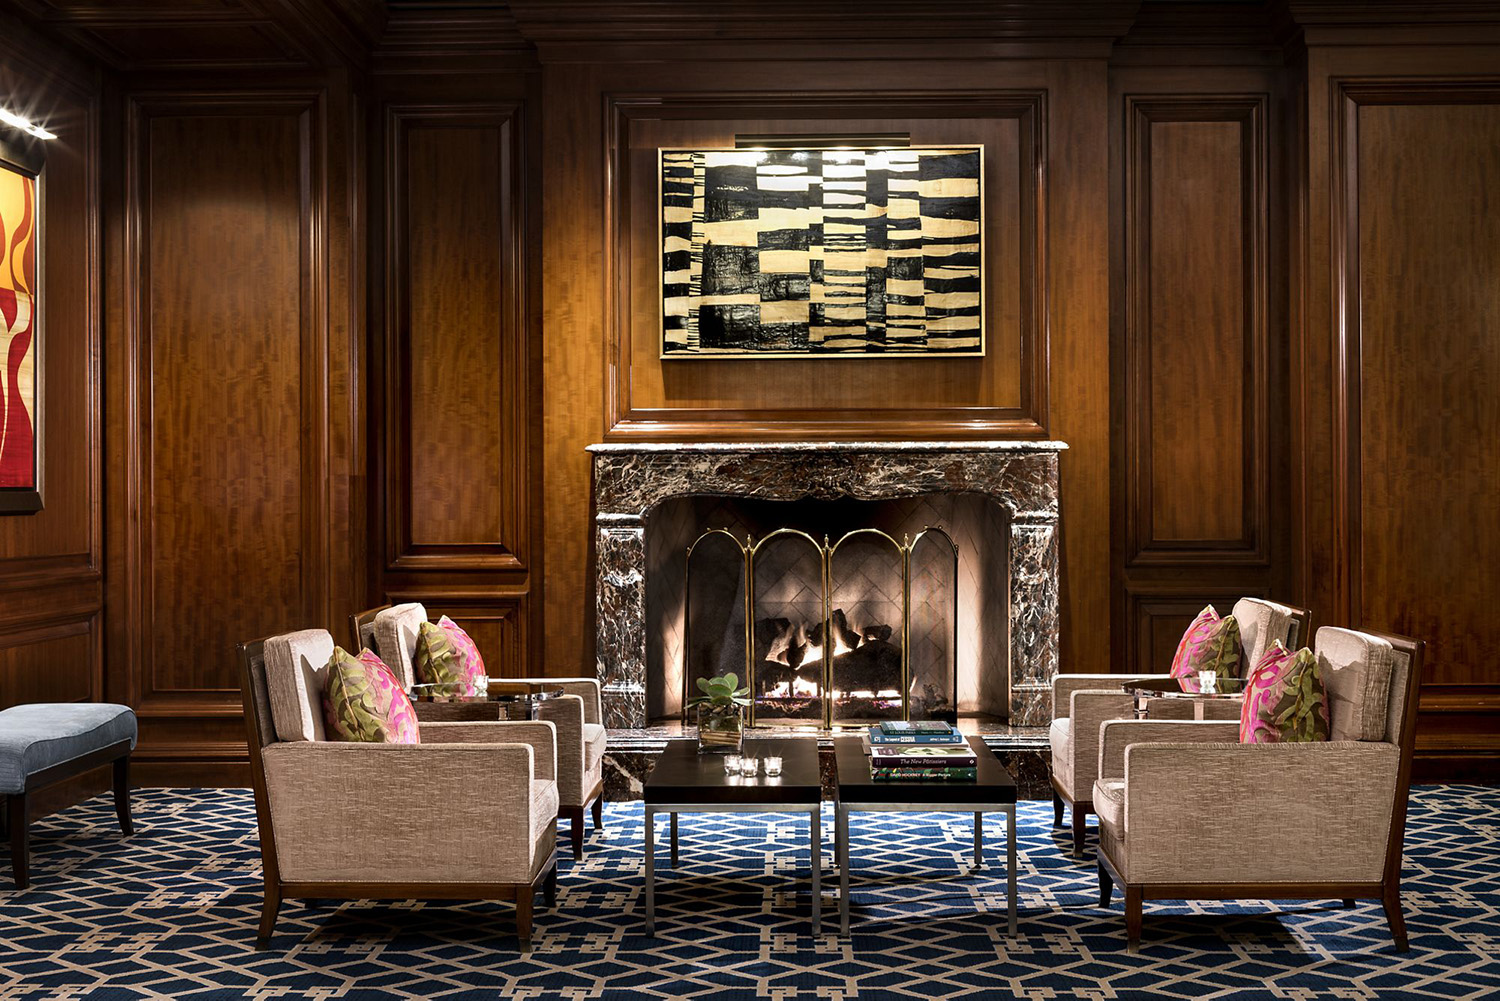 The lobby seating area of The Ritz-Carlton, St. Louis.